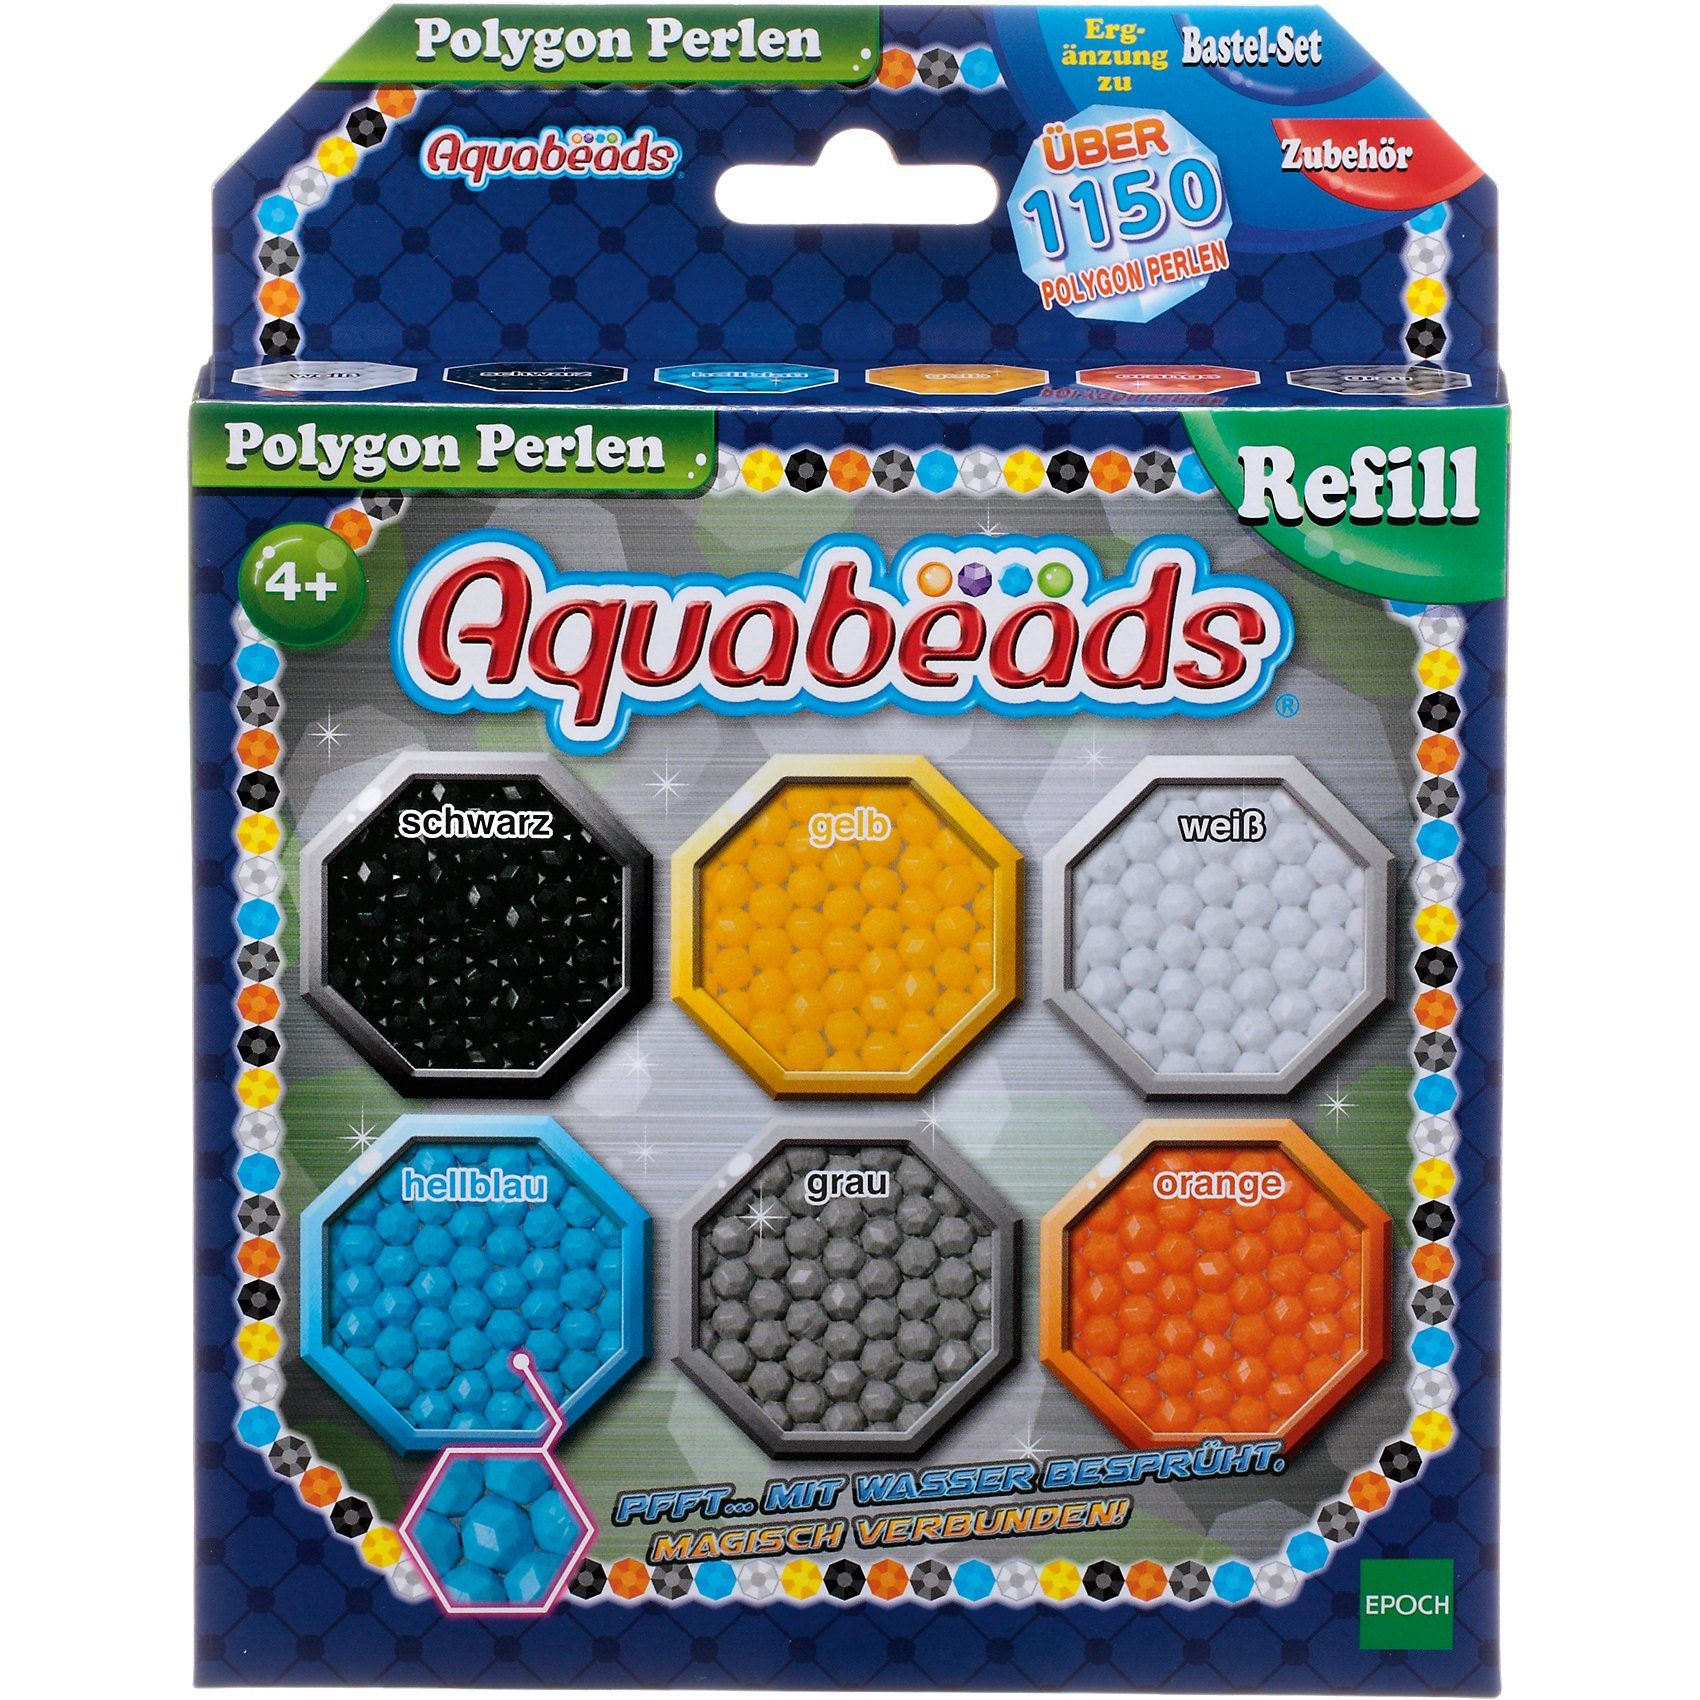 Epoch Traumwiesen Aquabeads Polygon Perlen